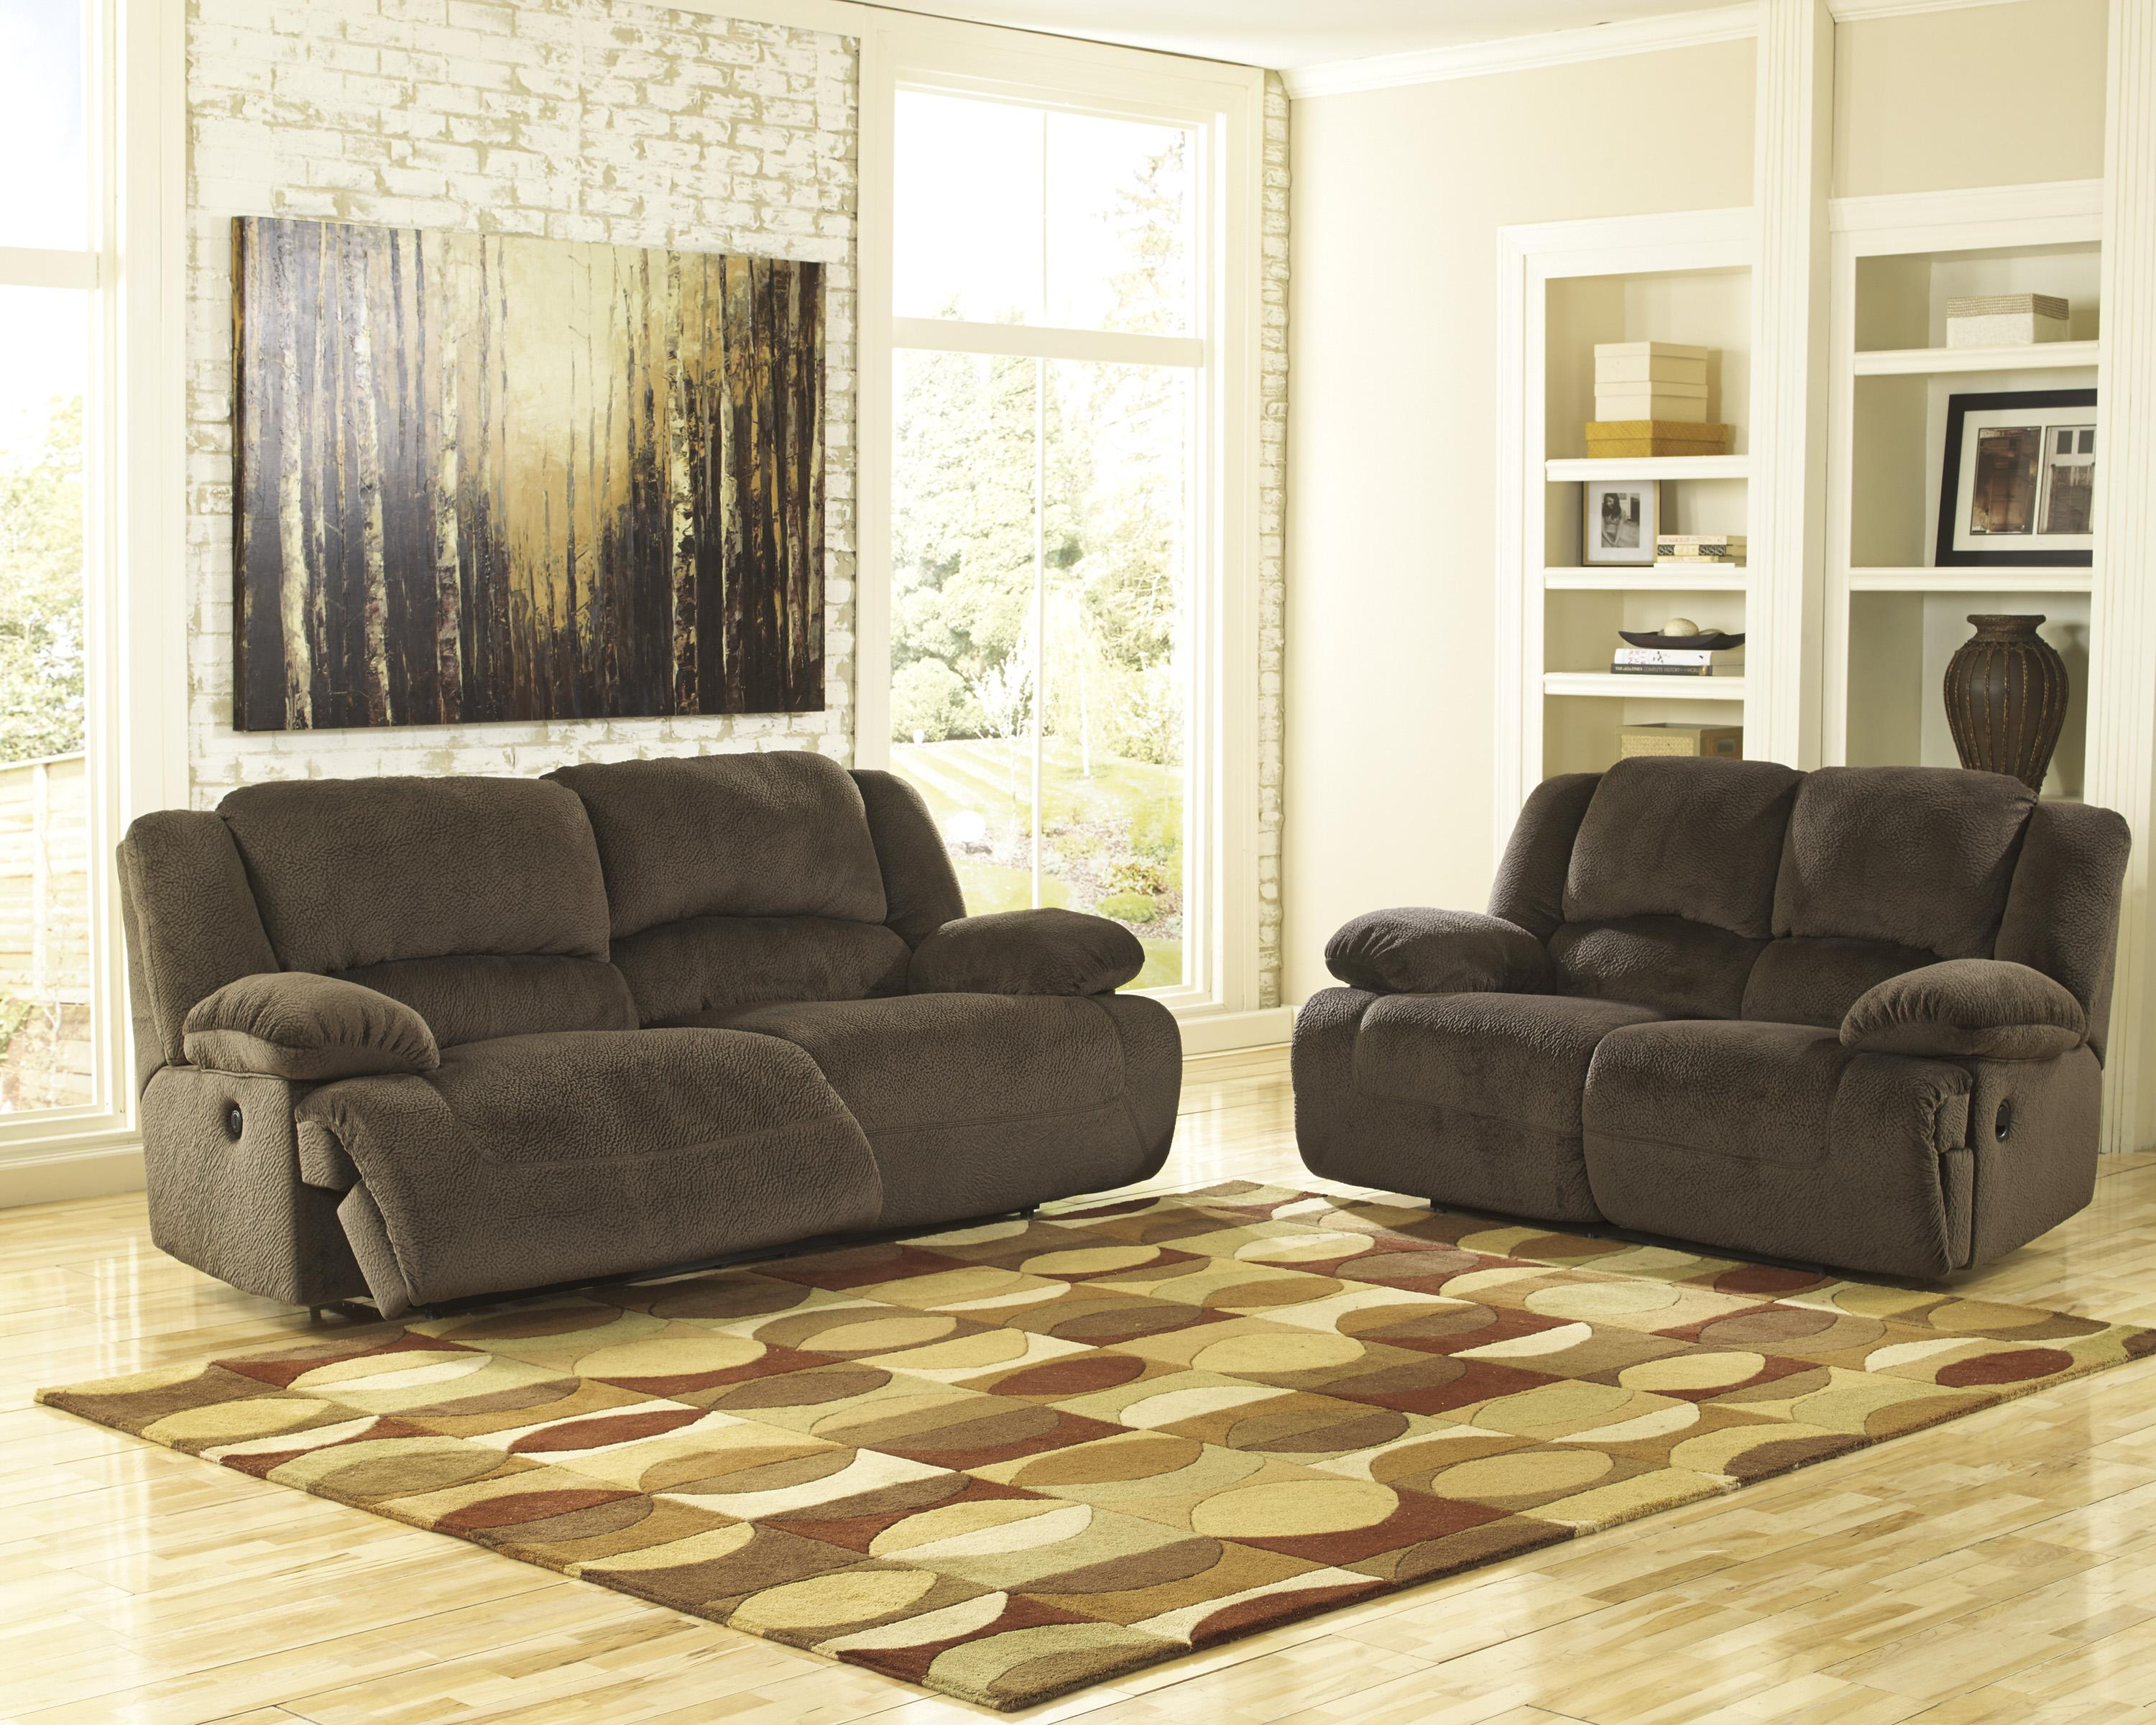 Casual Contemporary Reclining Loveseat by Signature Design